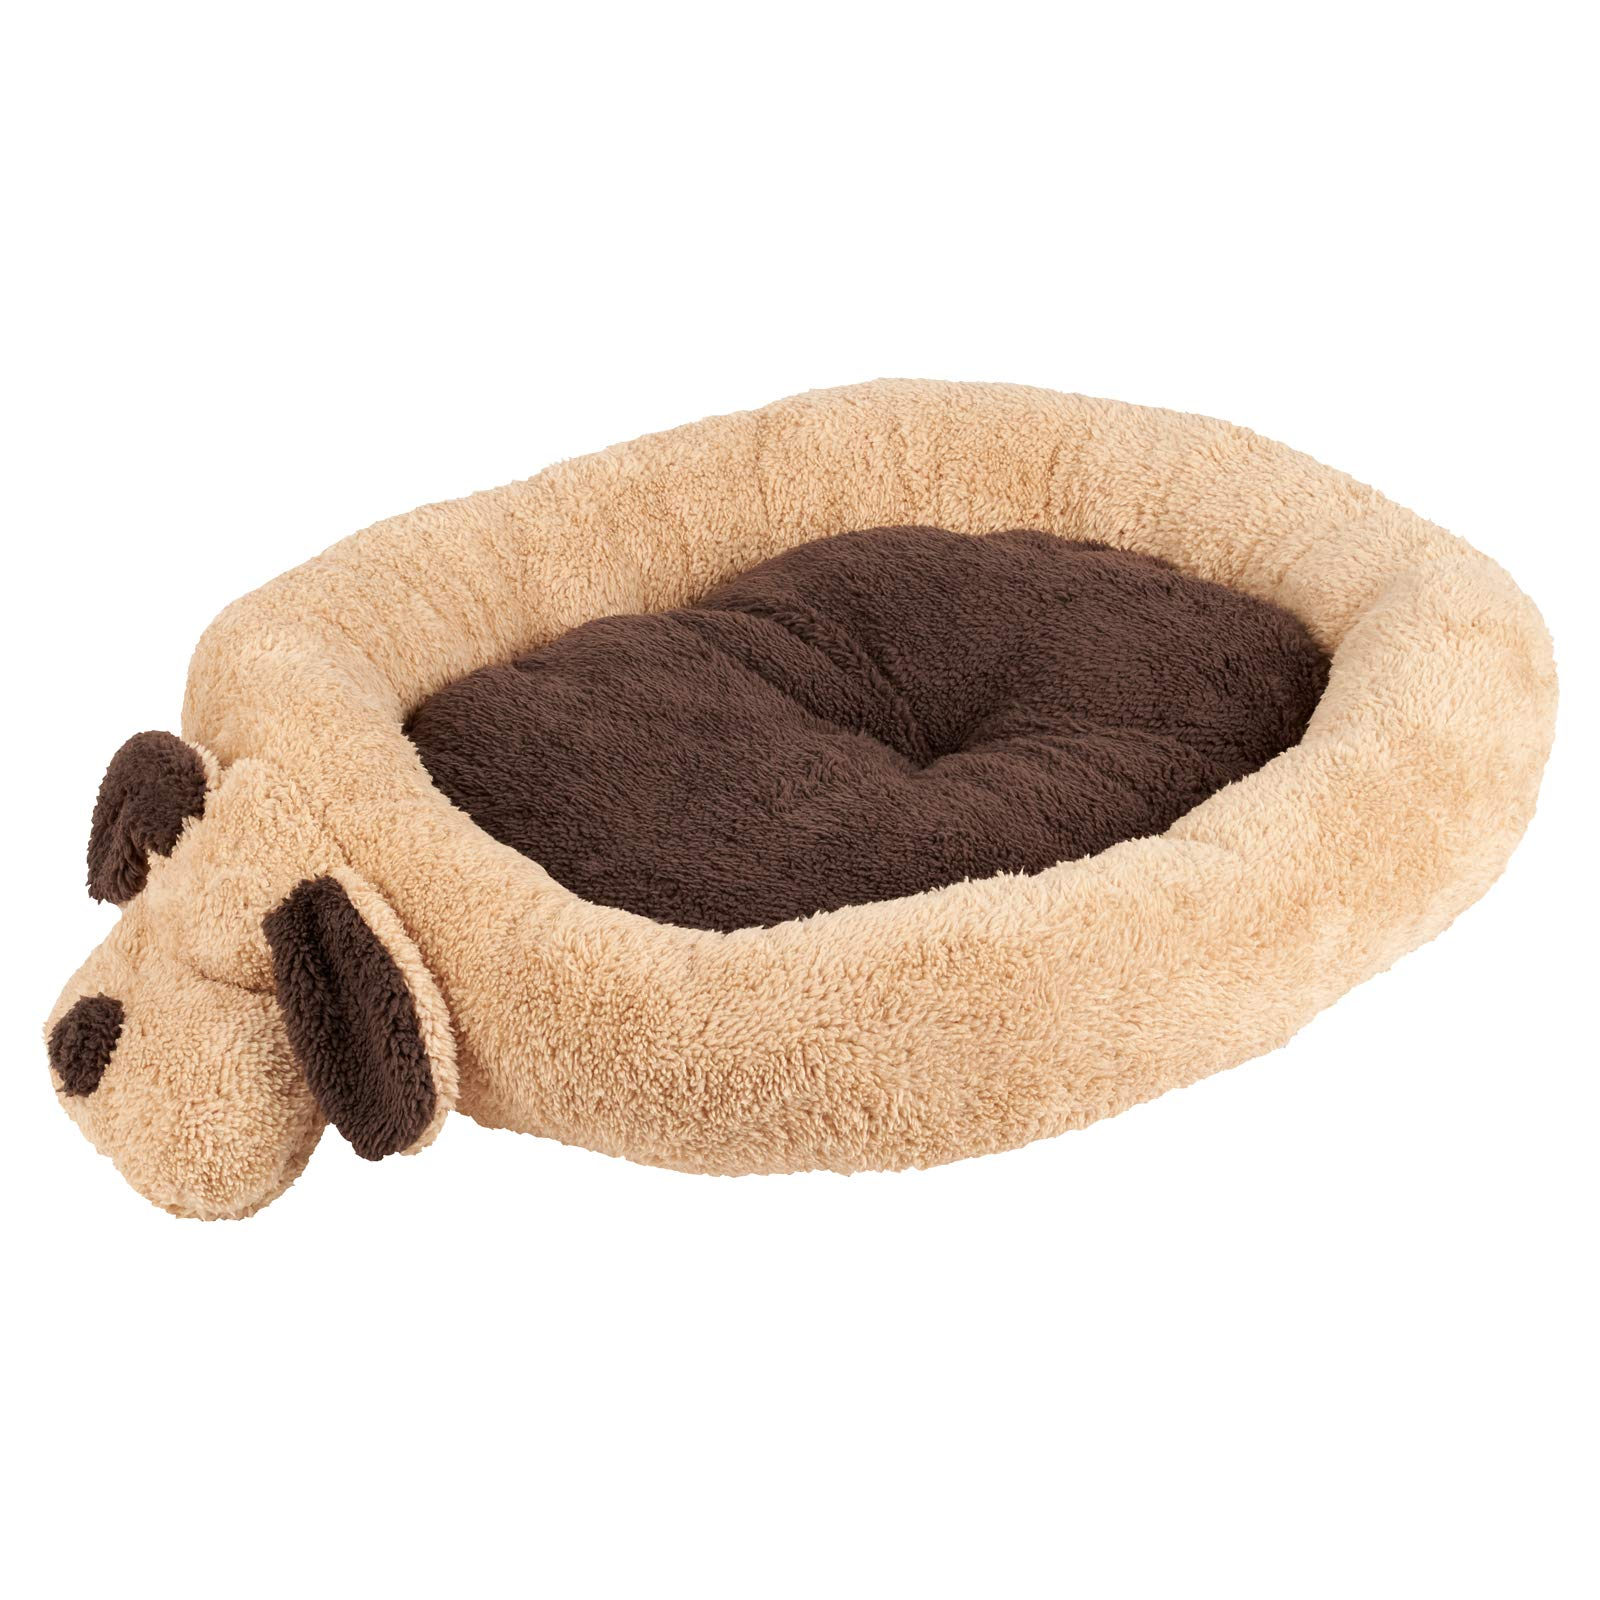 Me & My Head & Tail Soft Fleece Pet Bed – Brown/Beige